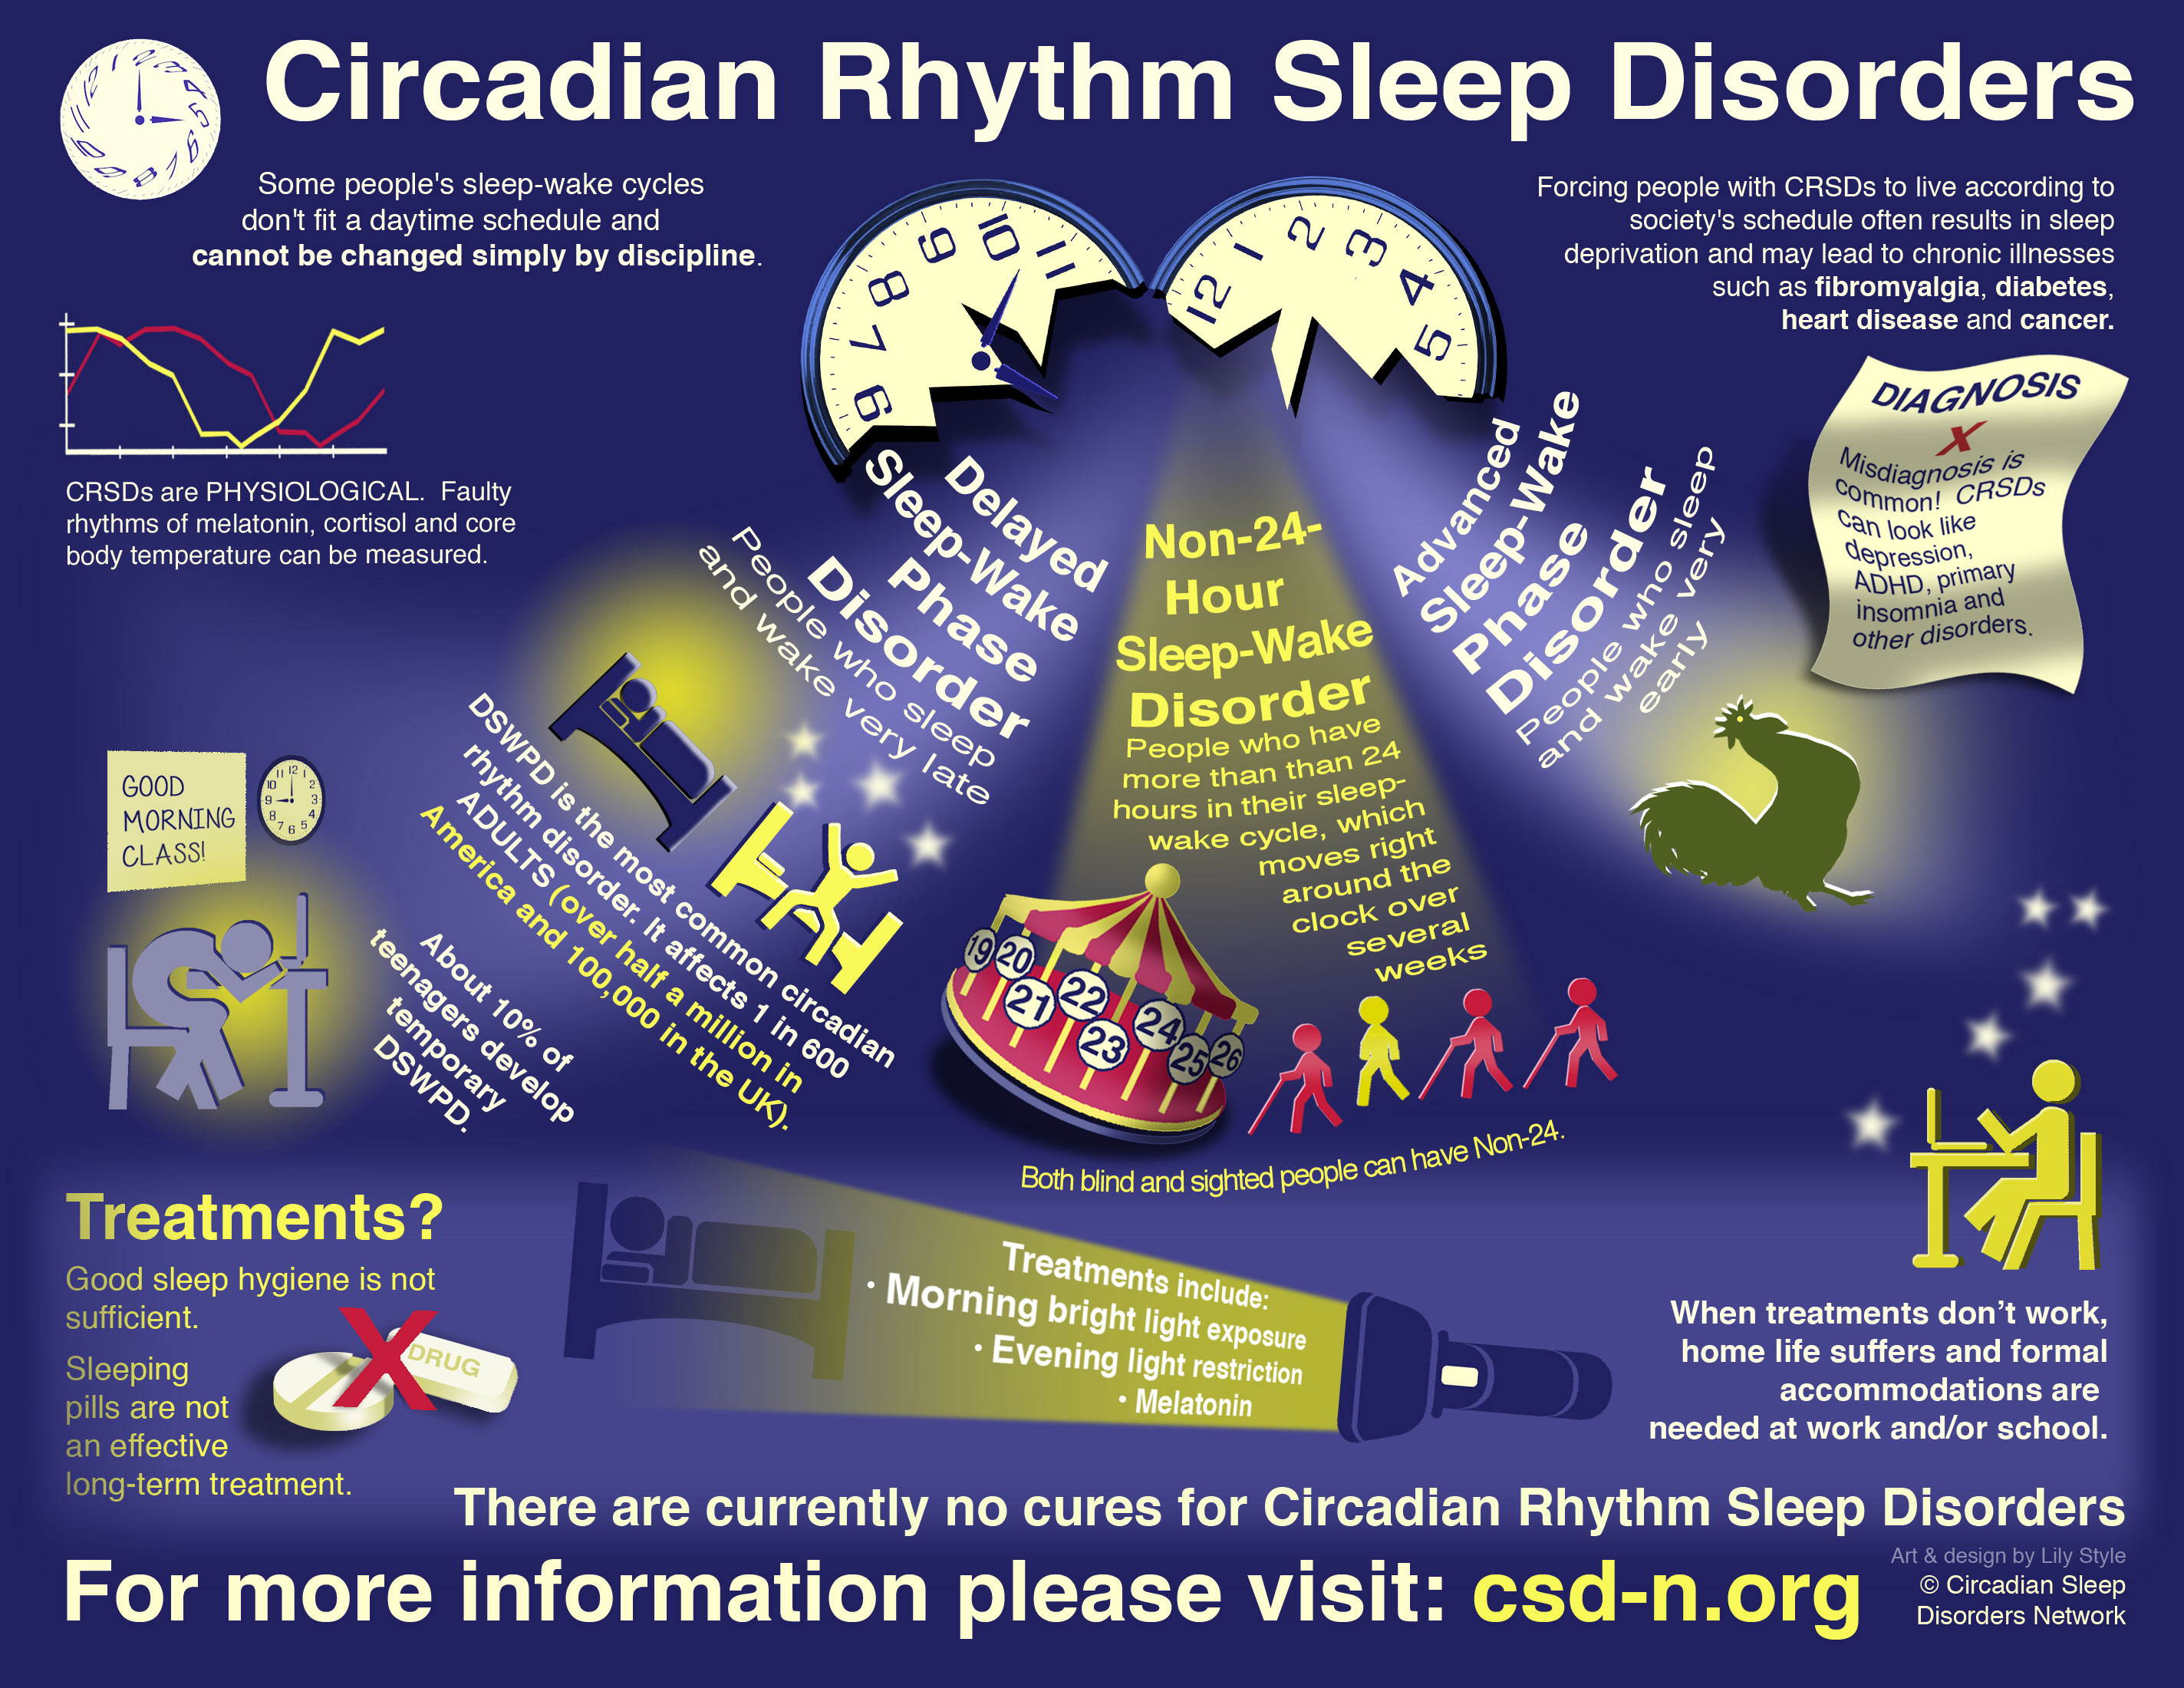 Circadian Sleep Disorders Network